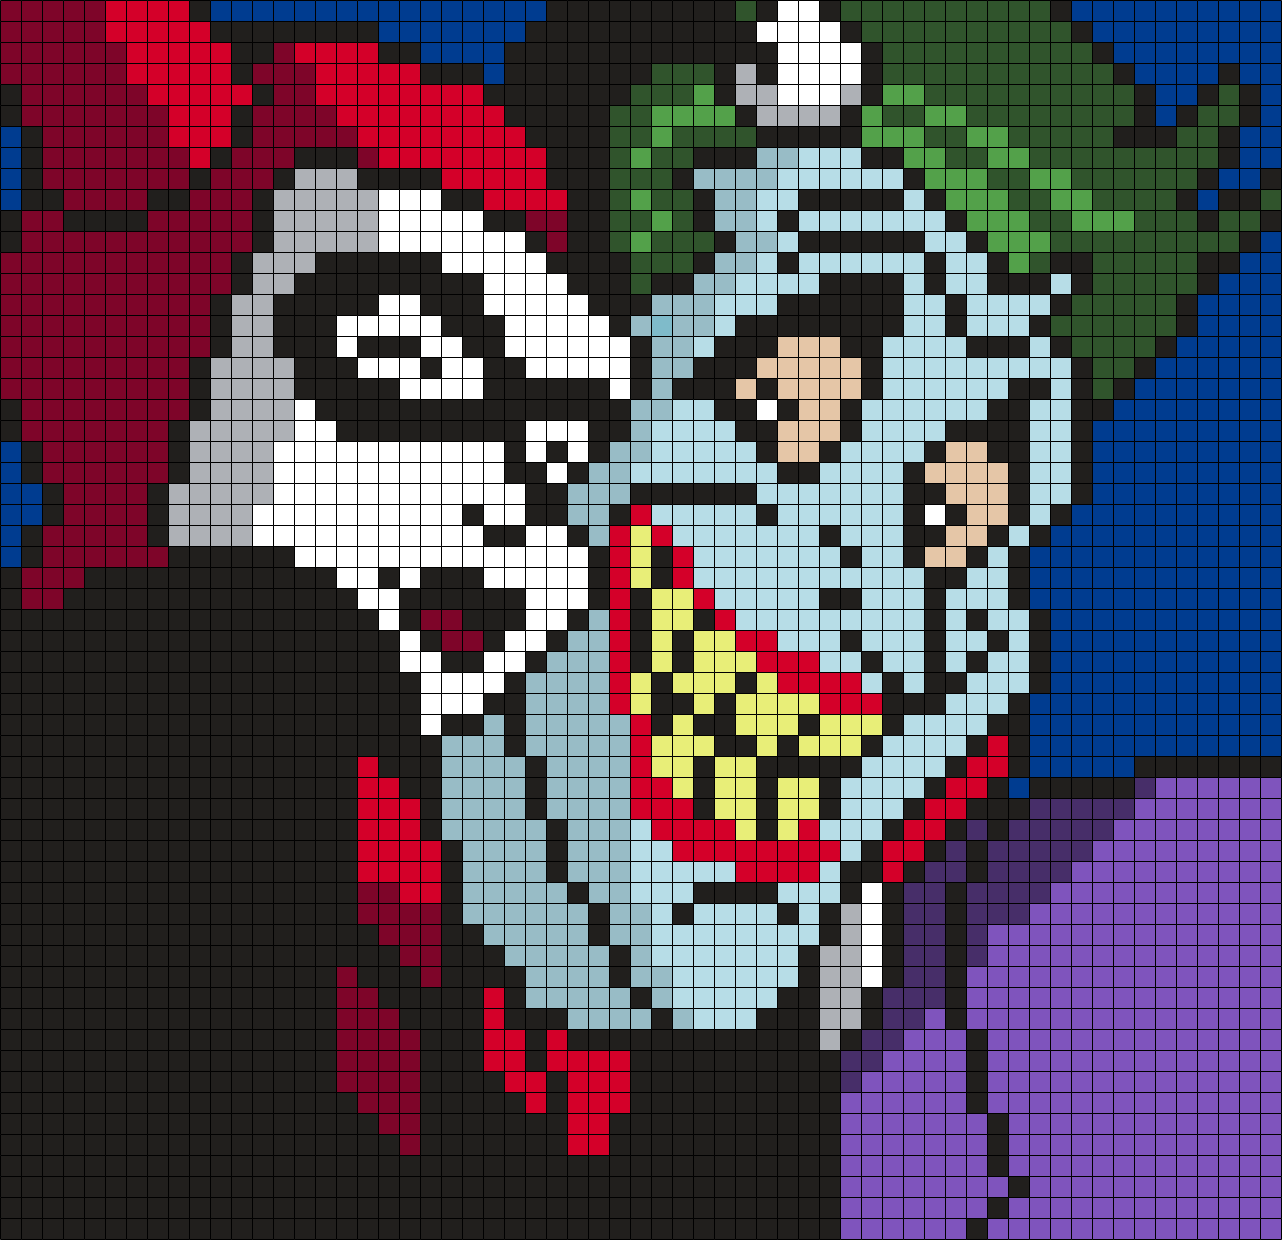 Harley Quinn And The Joker Selfie (Square)